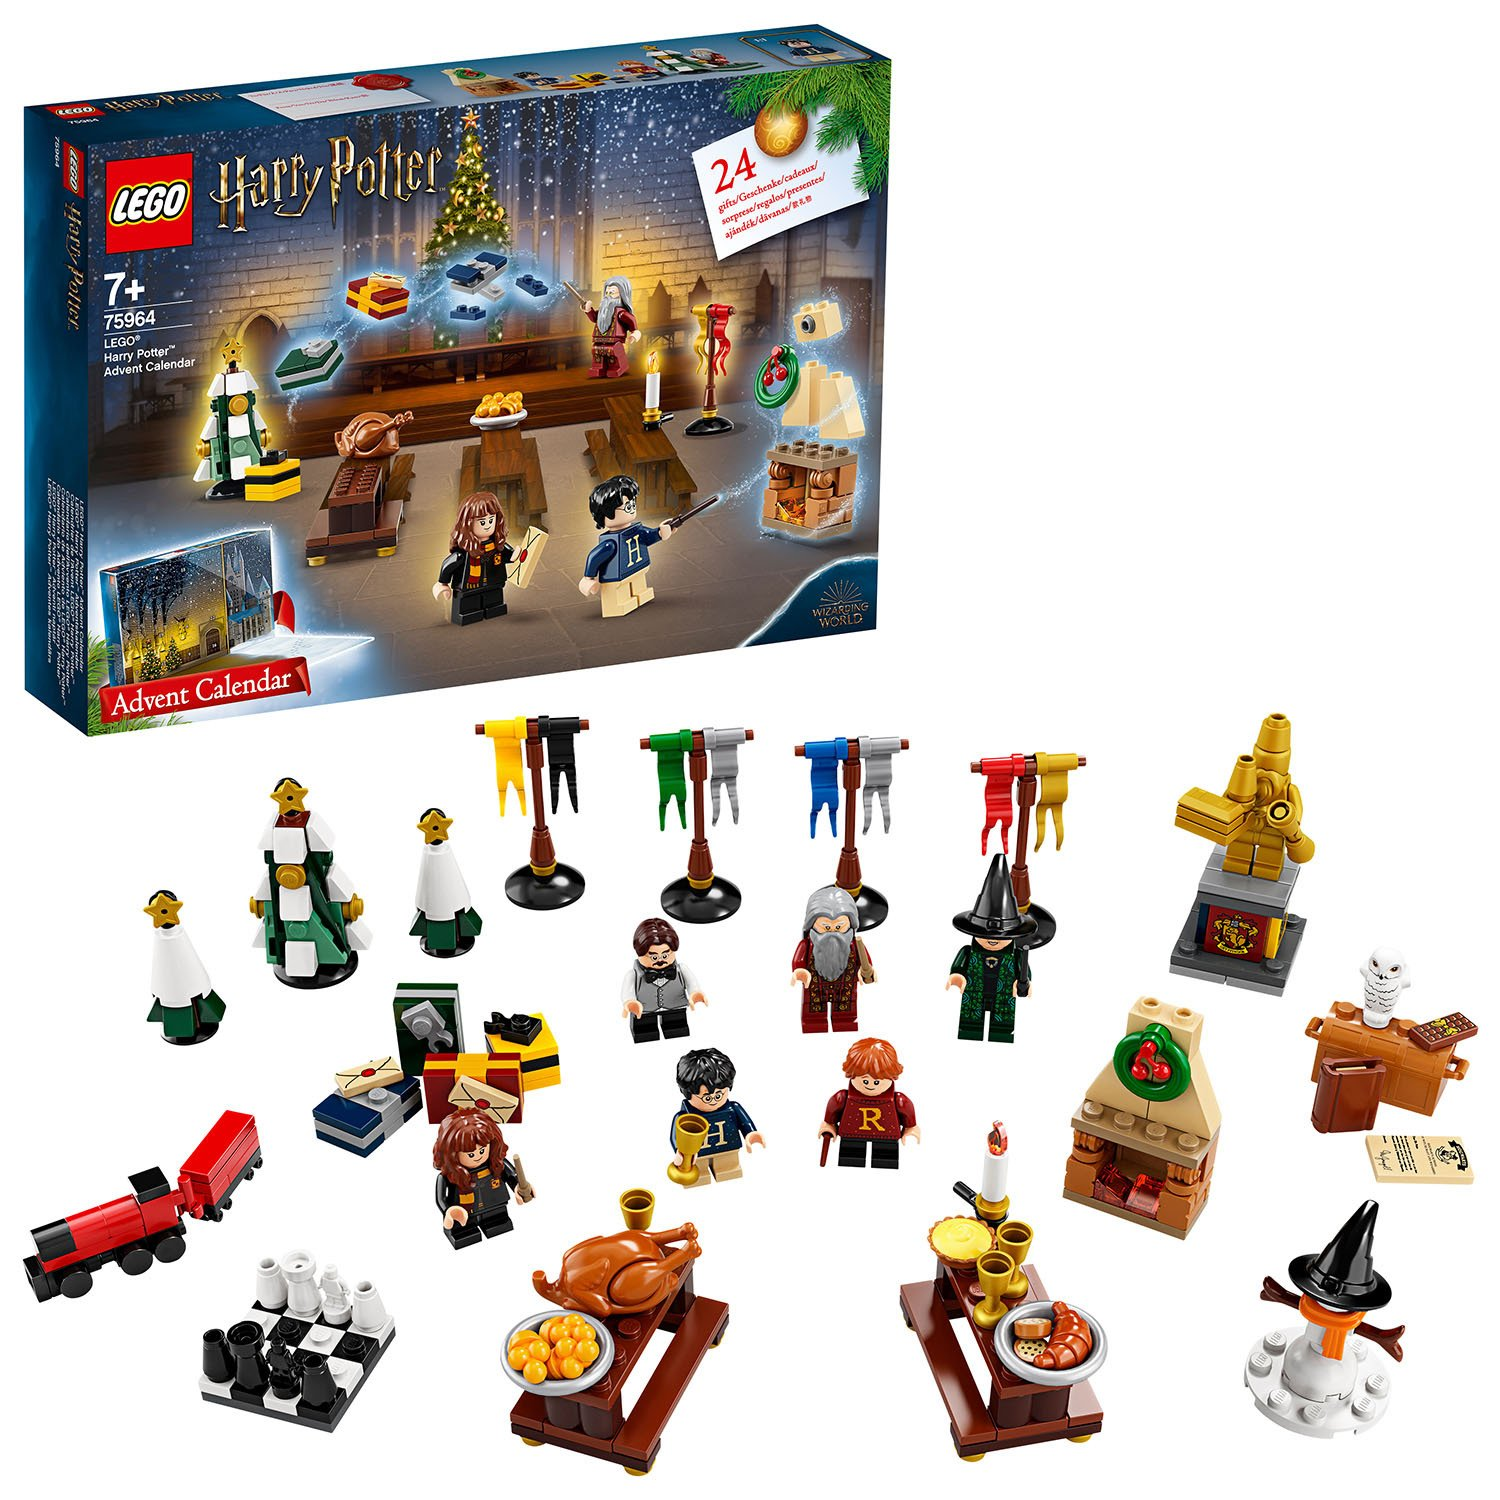 LEGO Harry Potter Advent Calendar 2019 Set 75964